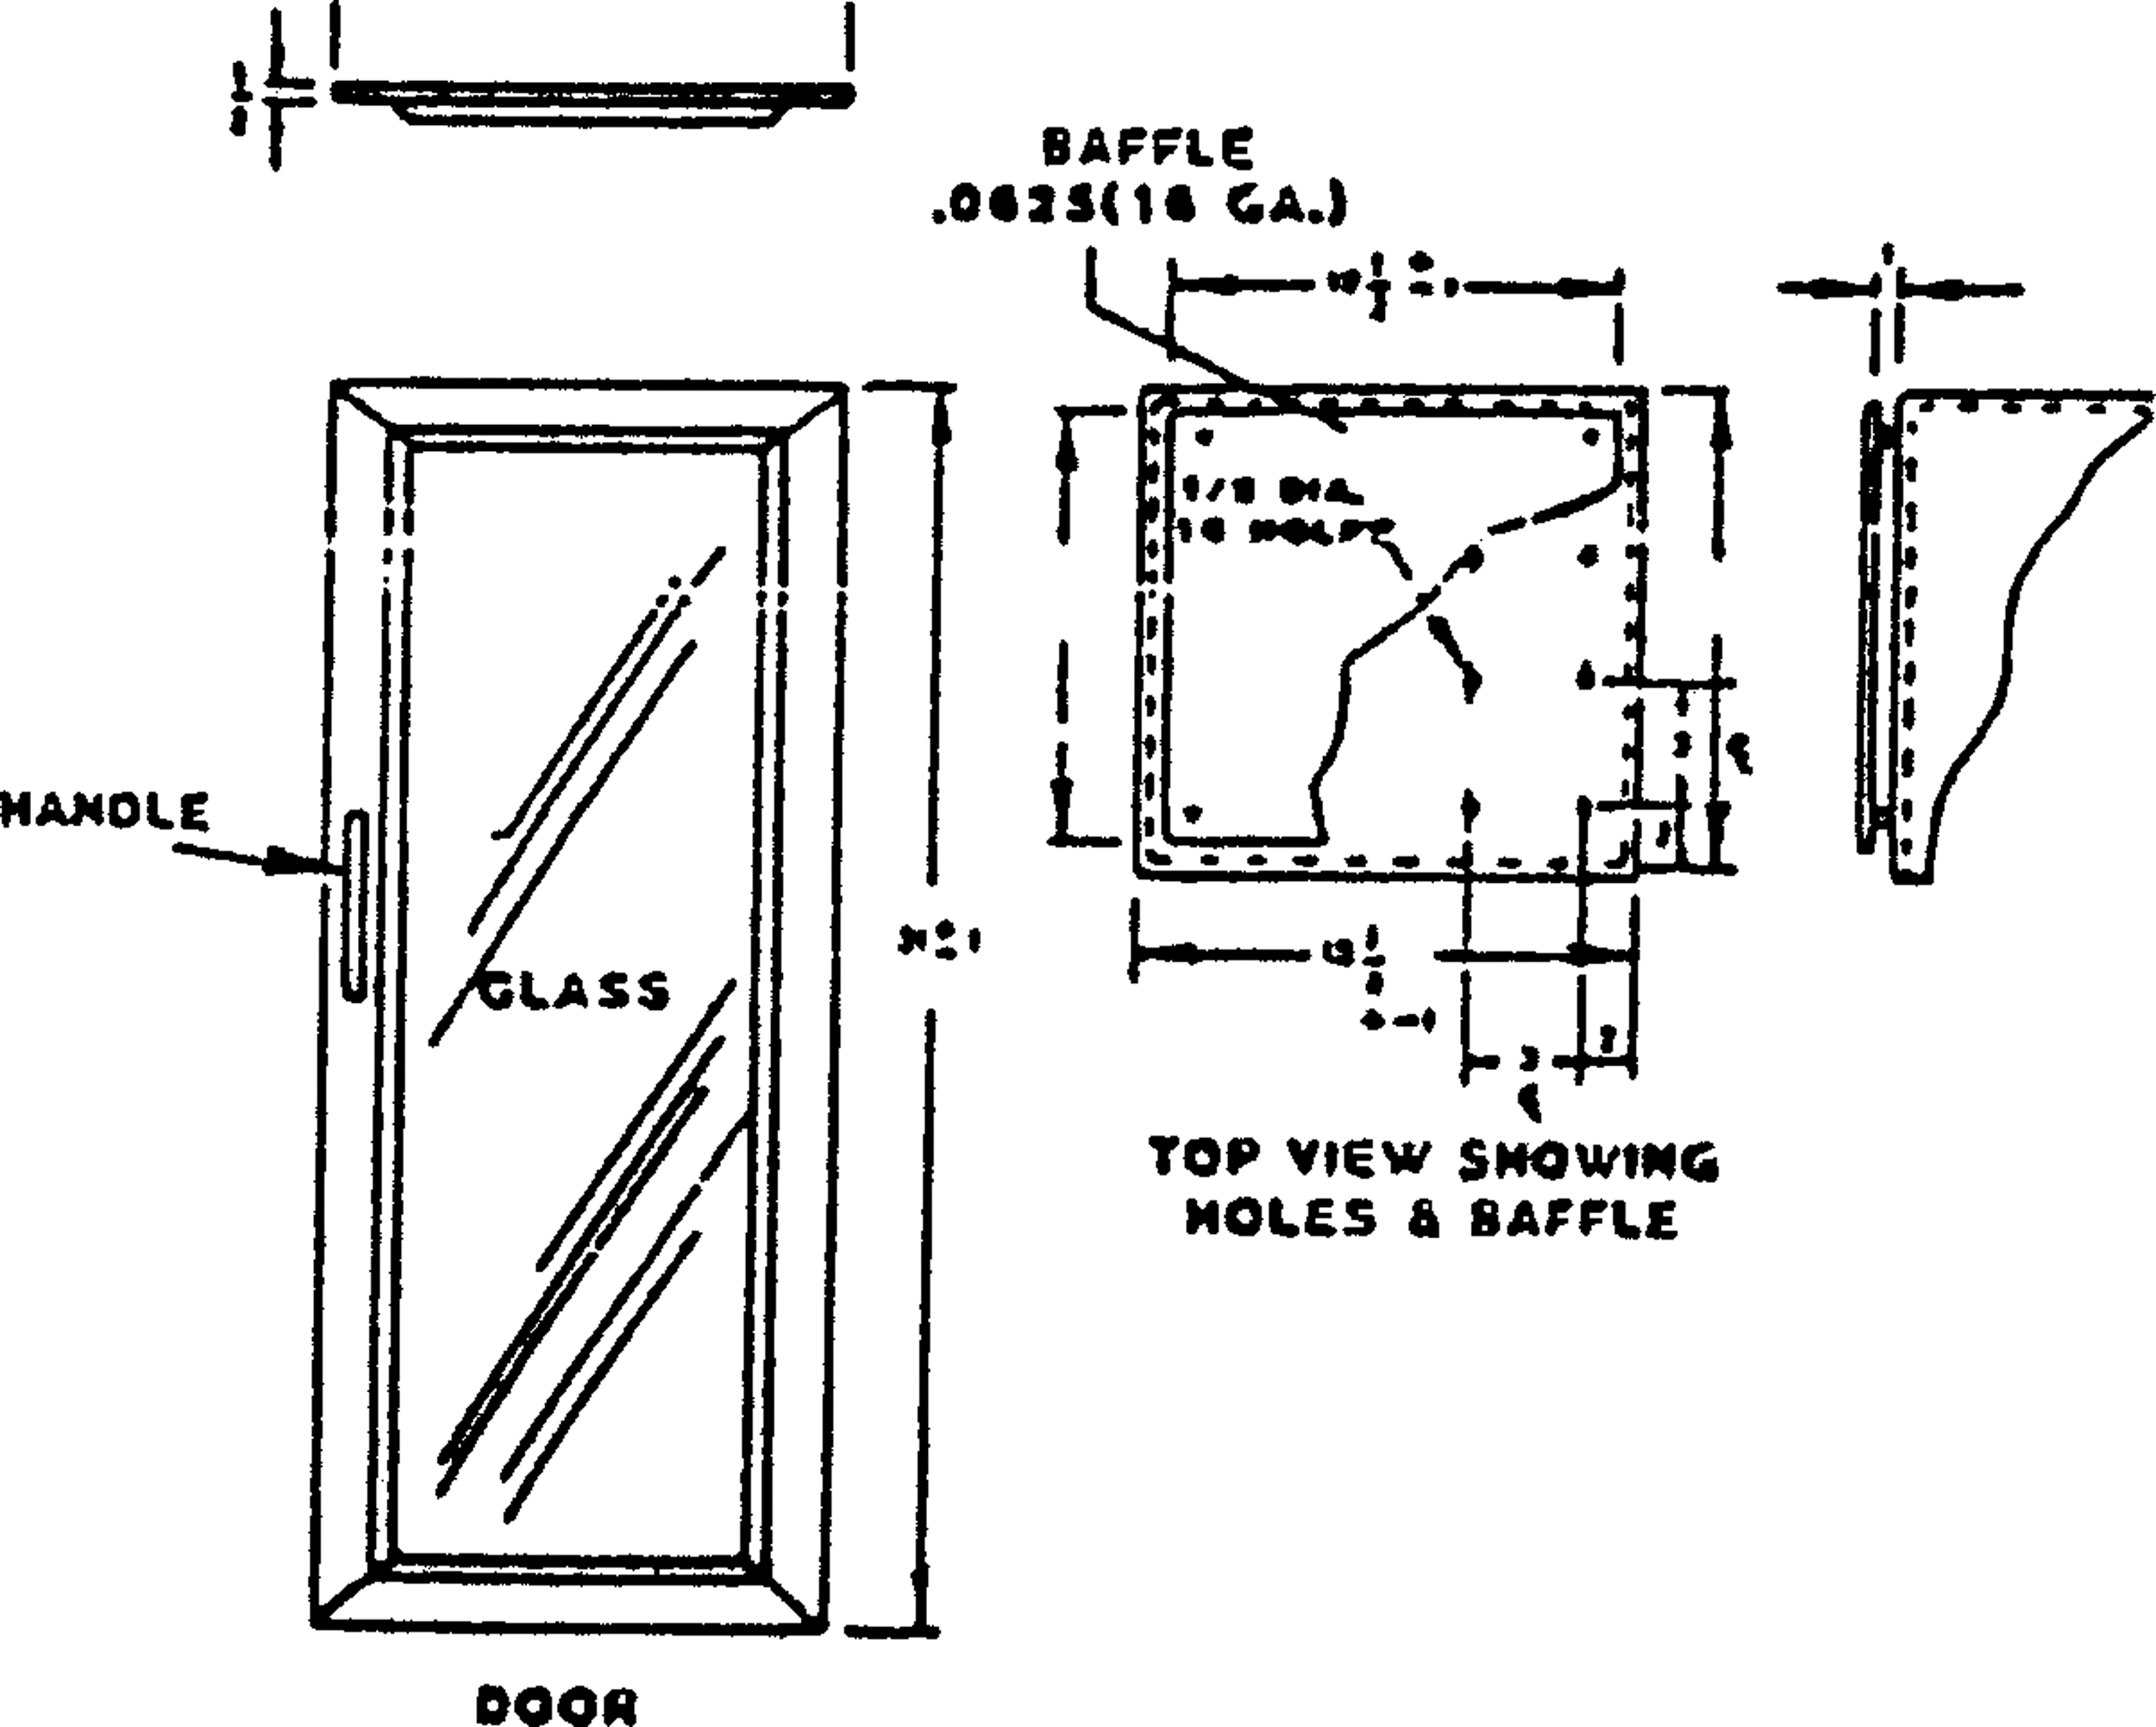 18 03 159  figure l 2 vertical flame resistance textile apparatus door and top view w baffle all given dimensions are in inches system international s i unit